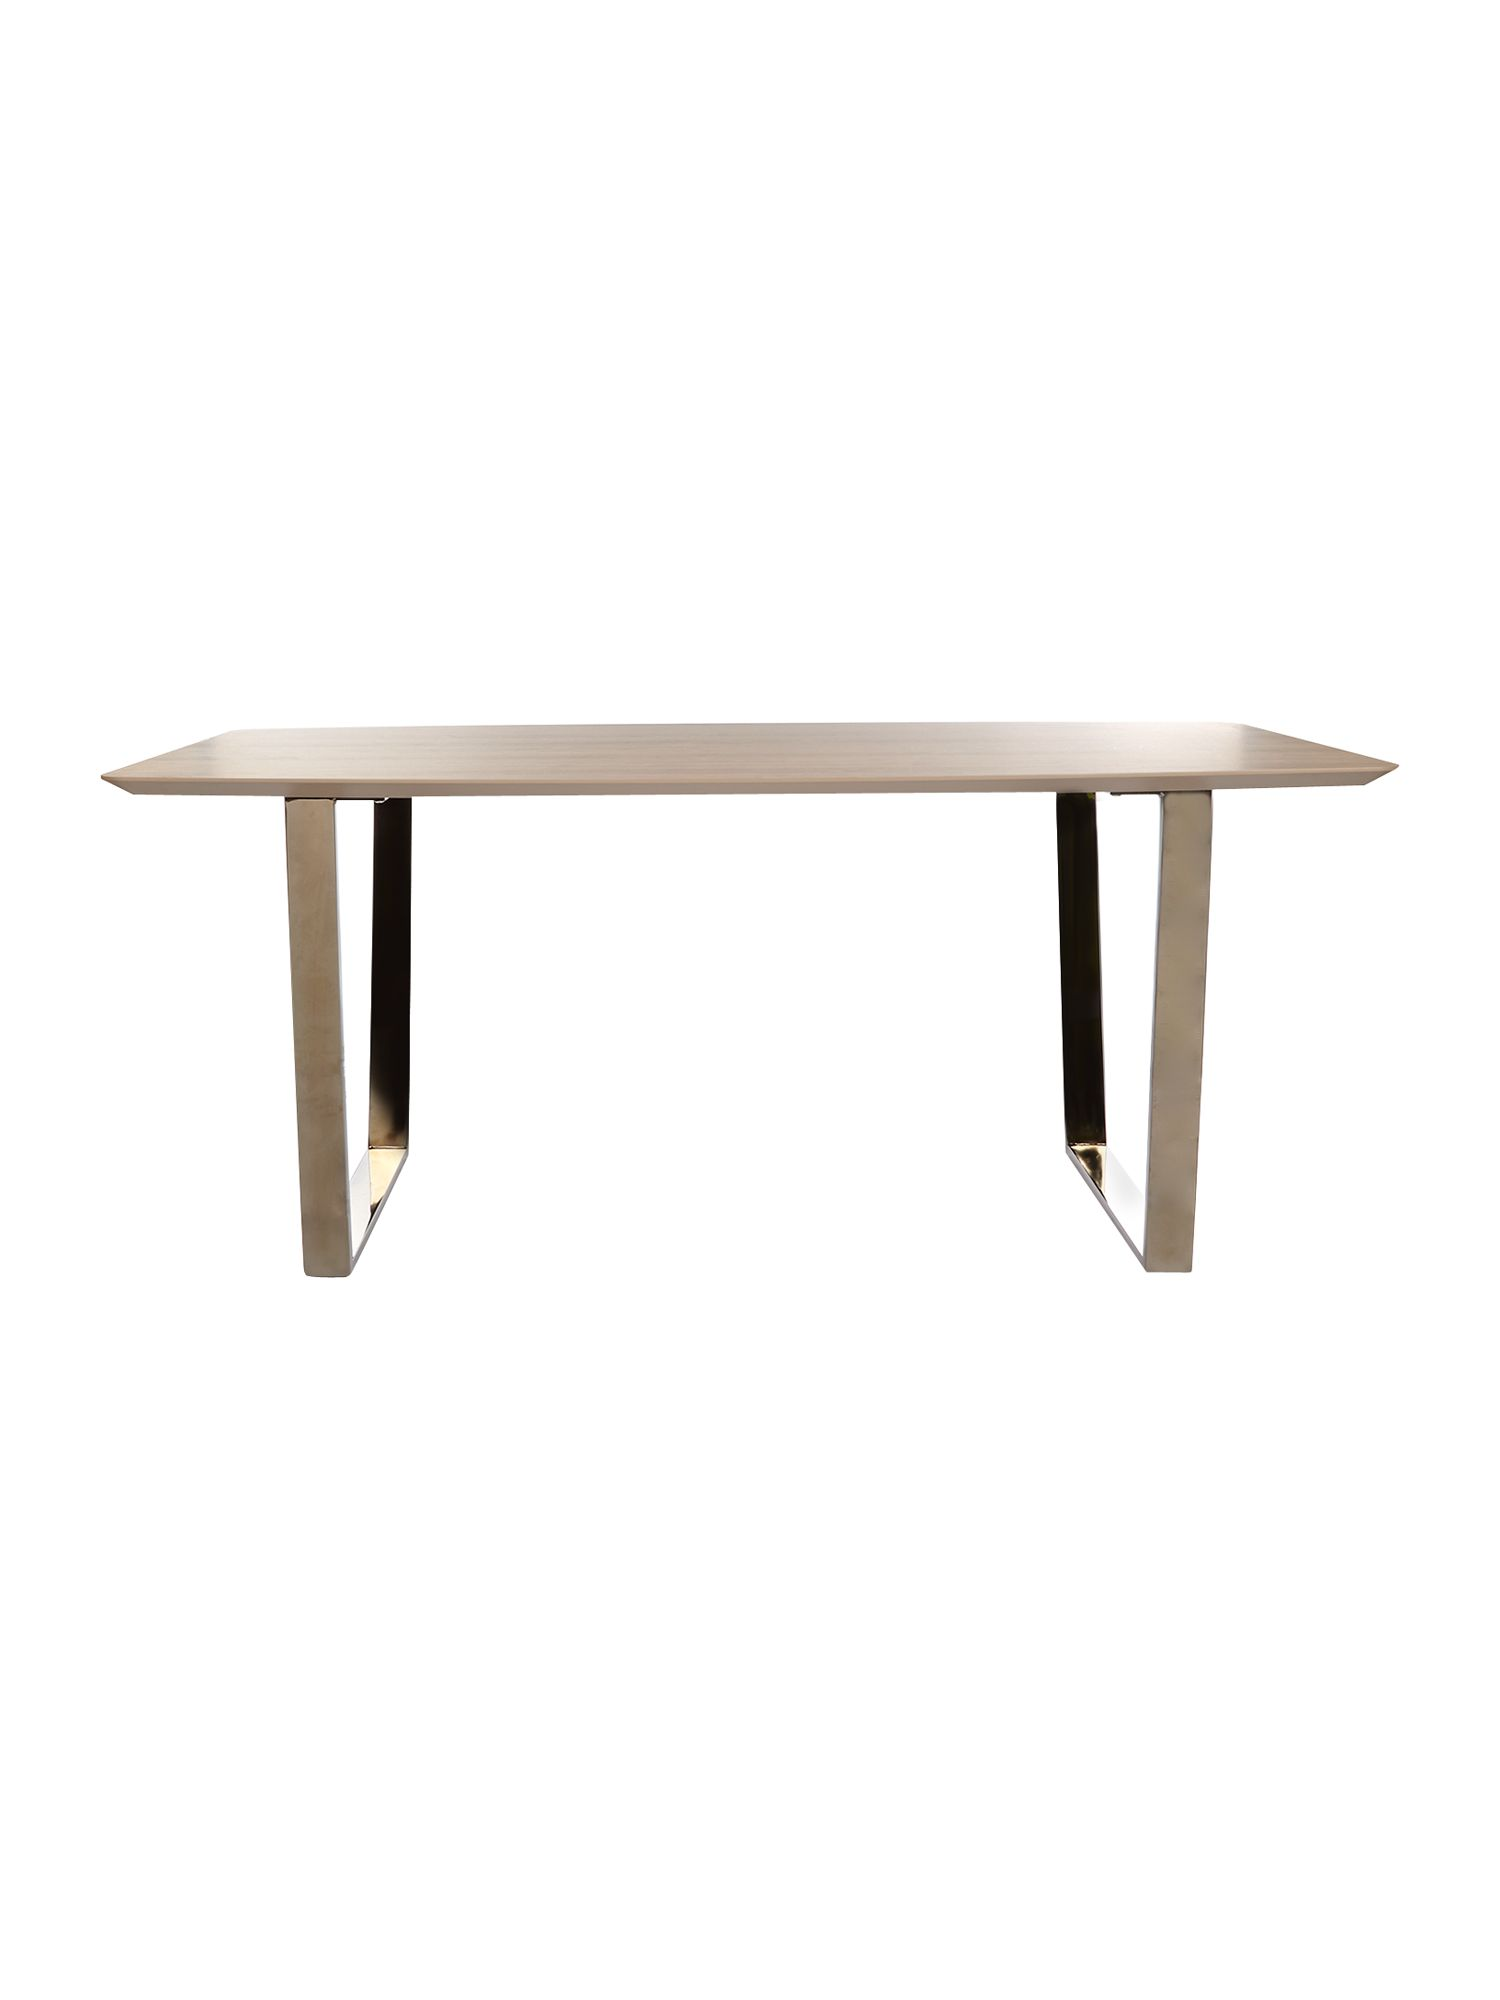 Lazio dining table